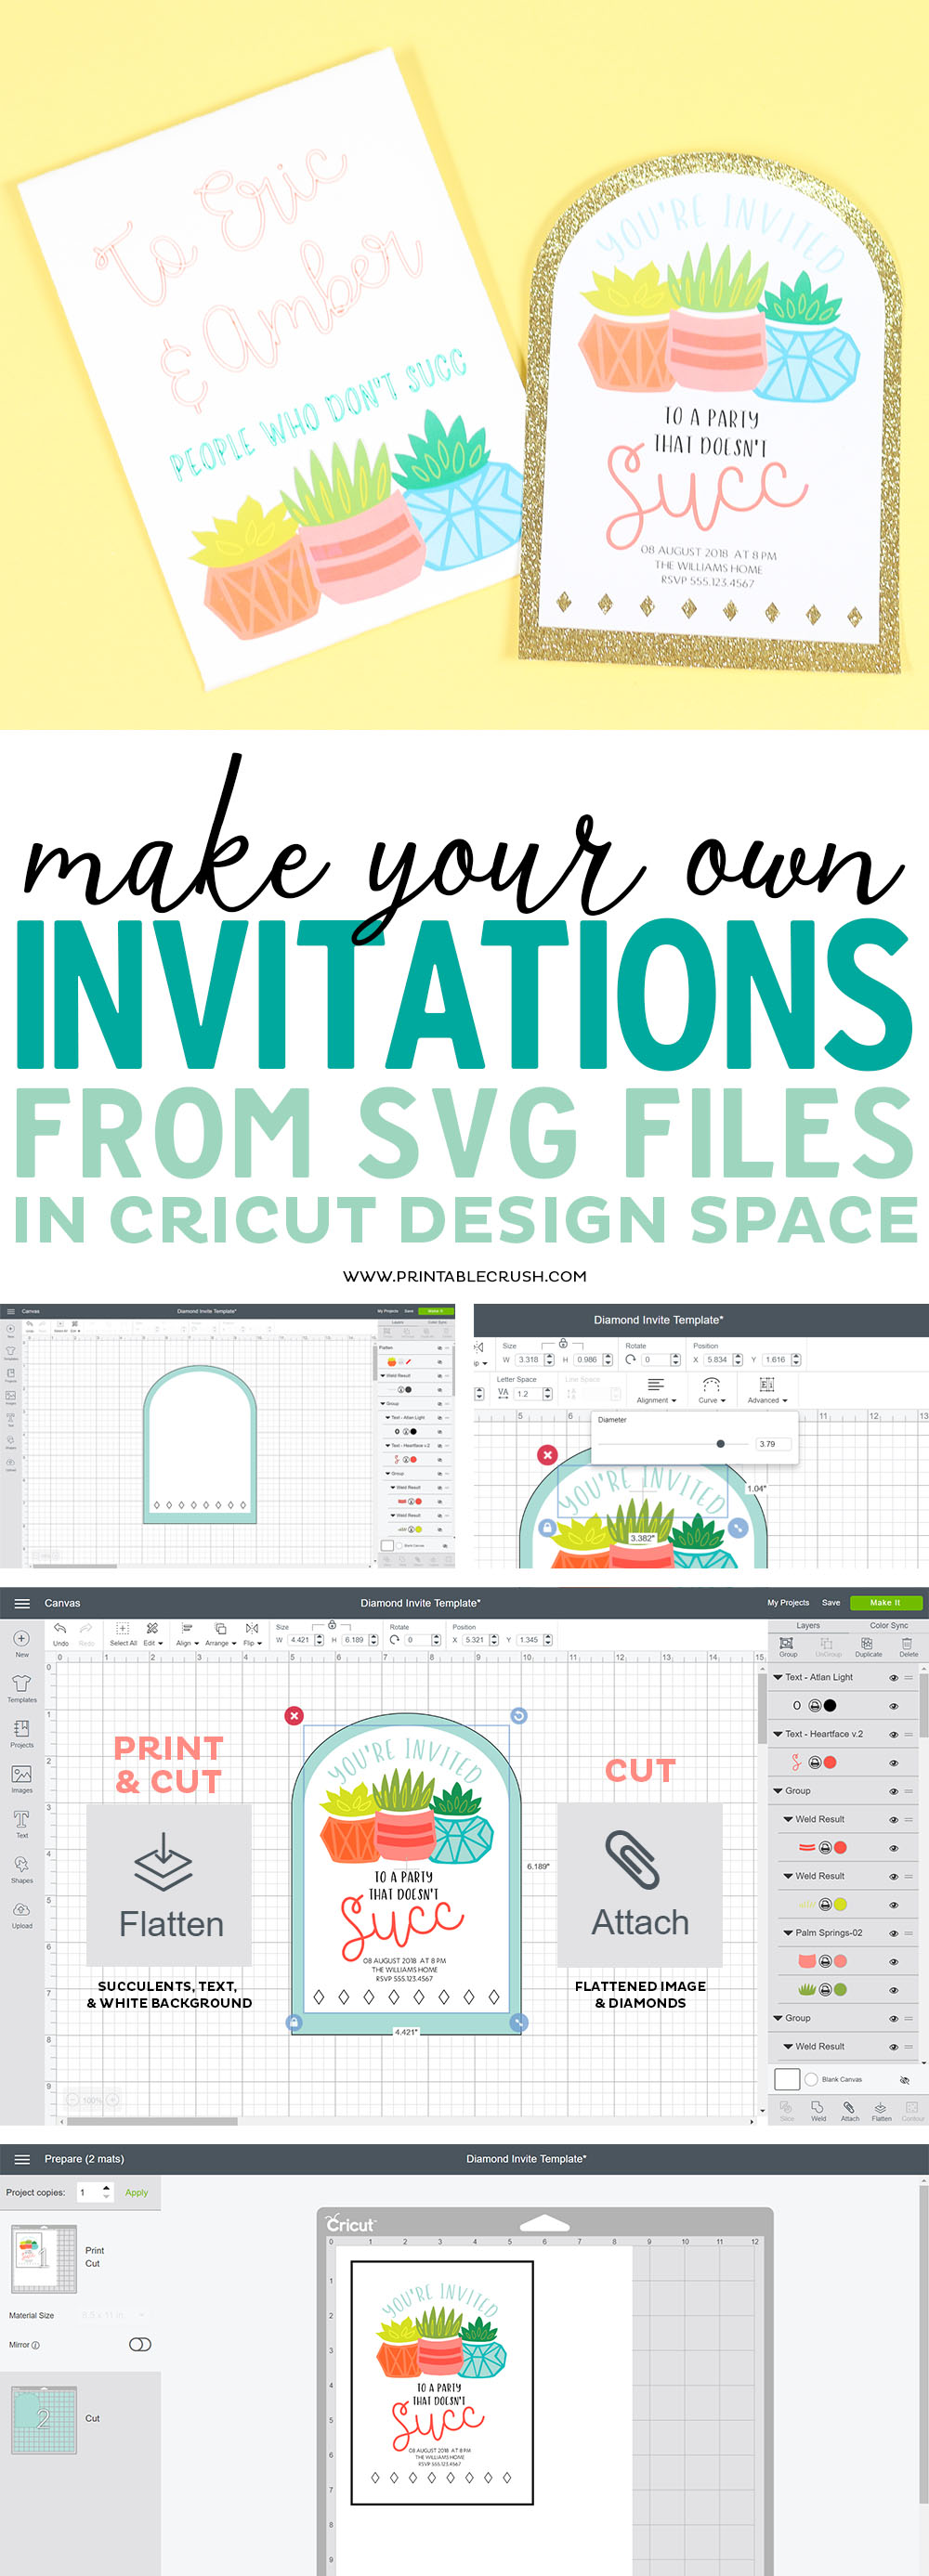 Did you know you couldMake Your Own Invitations from SVG Files? I'll teach you how to create these cute succulent invites in Cricut Design Space! #cricutmade #svgfiles #cricutdesignspace #cricutmaker via @printablecrush